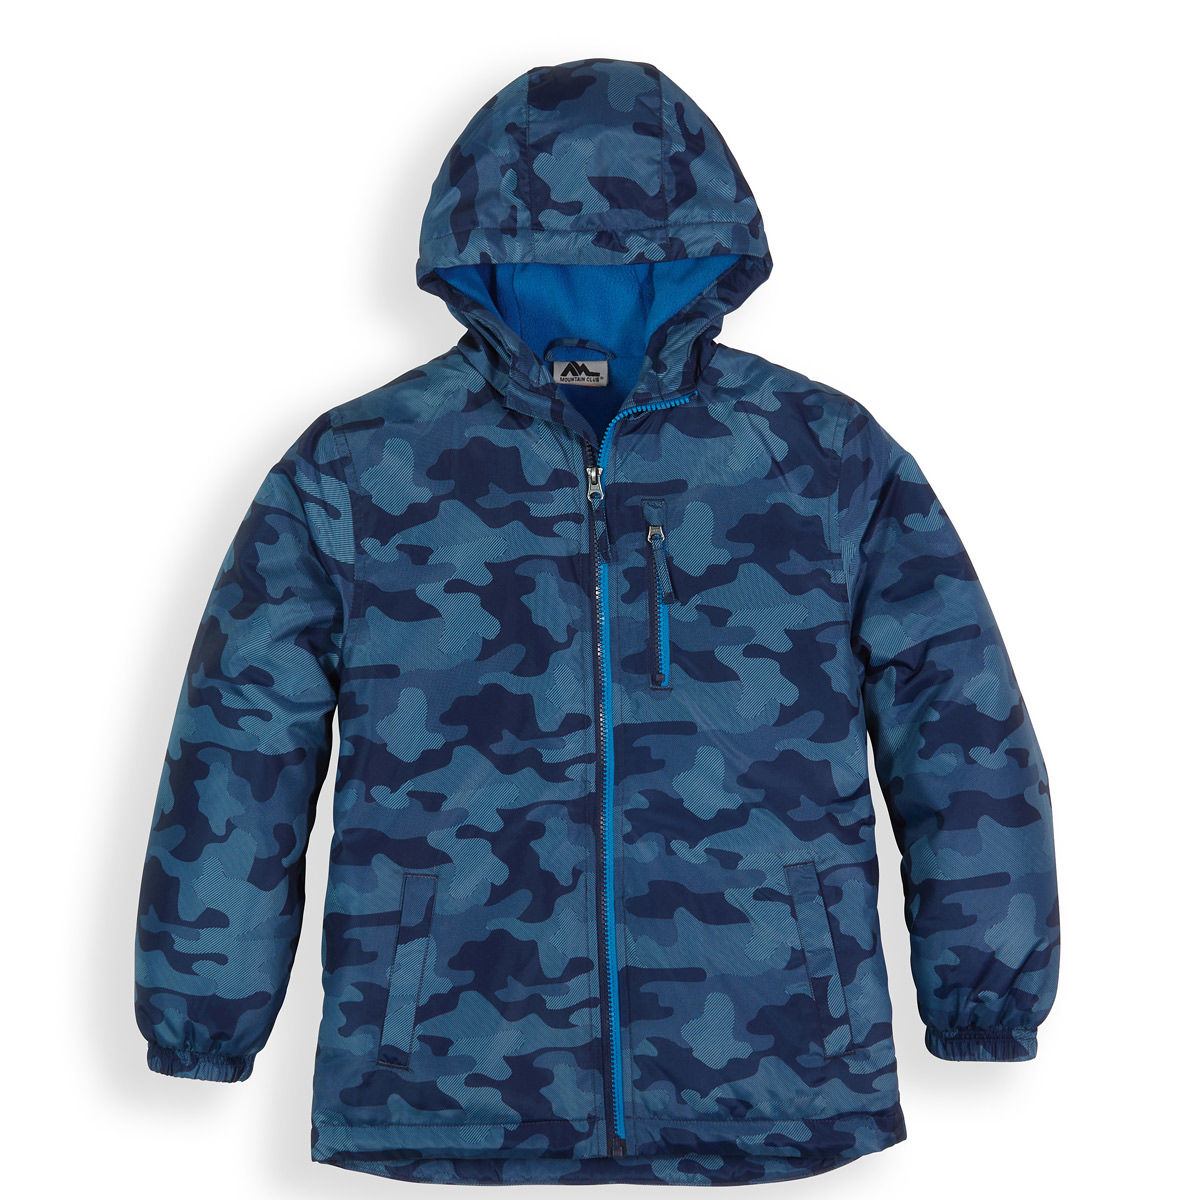 Cheap kids jackets – which is the right one?